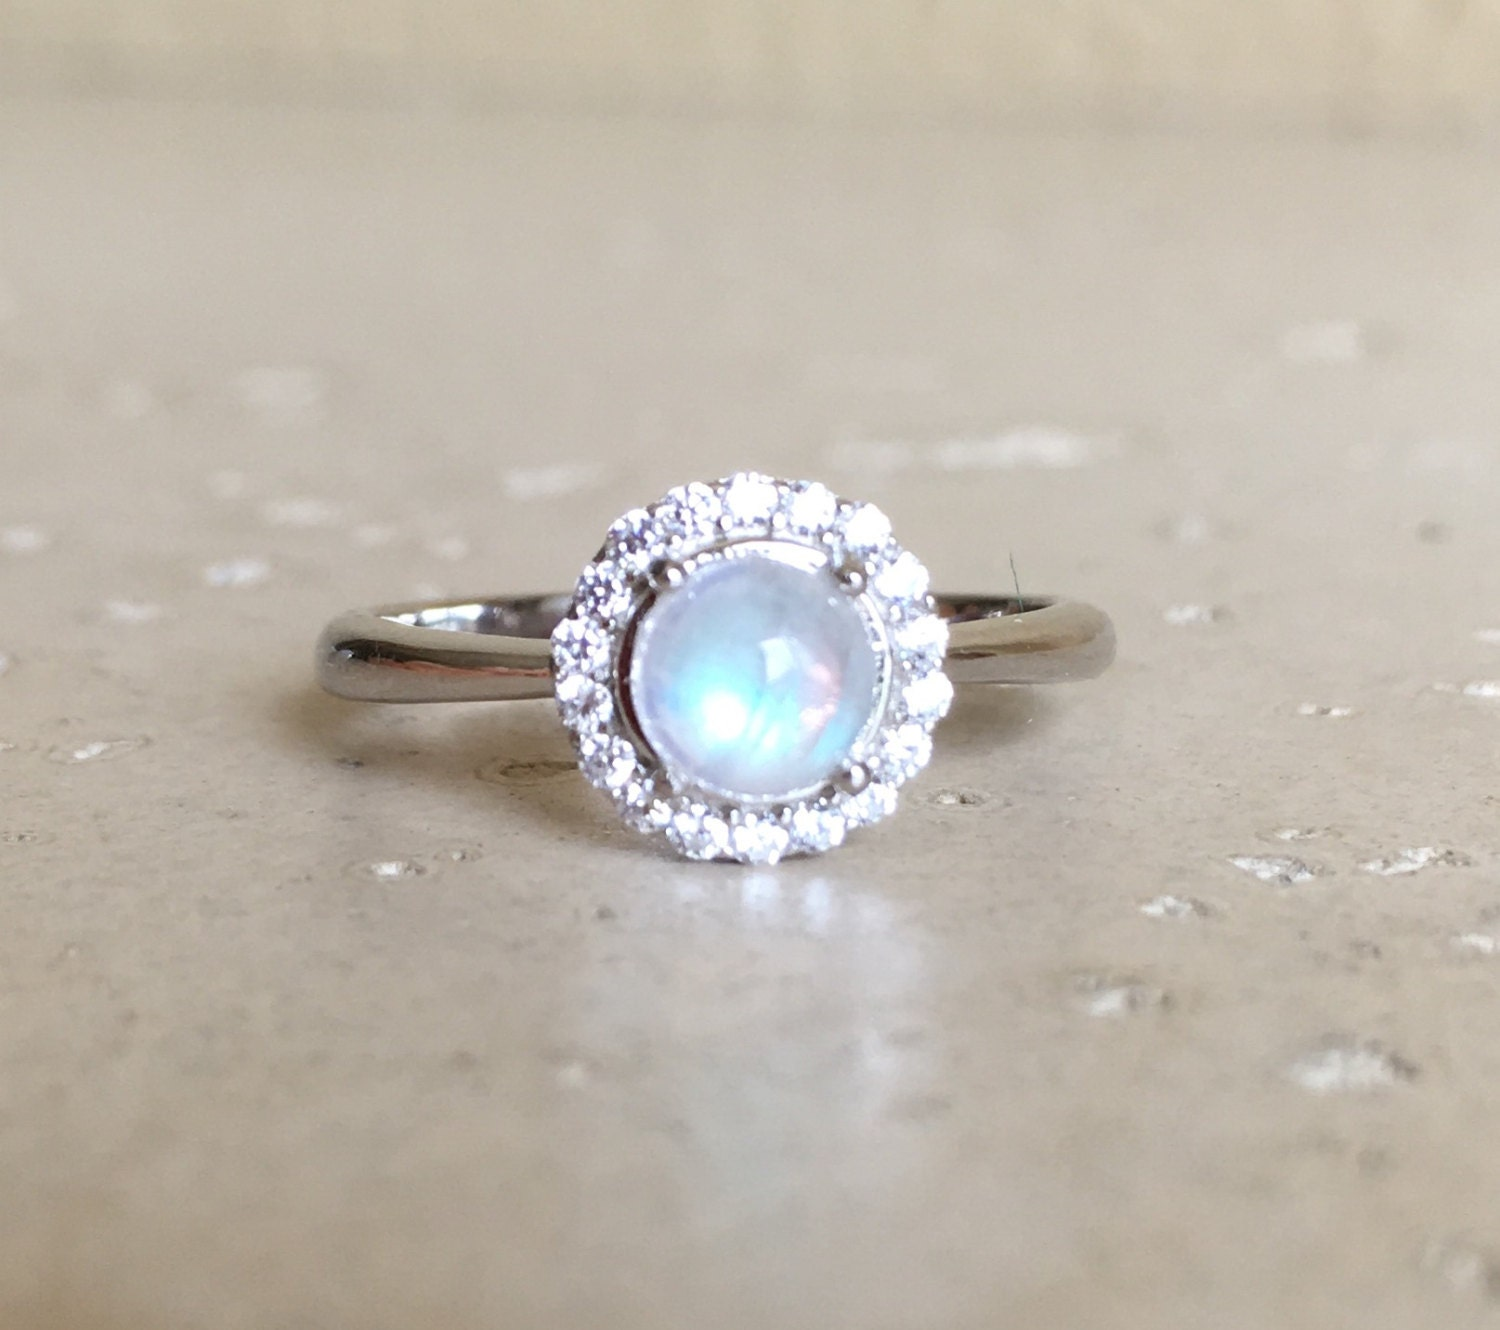 ring glamour rings birthstone weddings alternatives wedding story main engagement june diamond stone birth